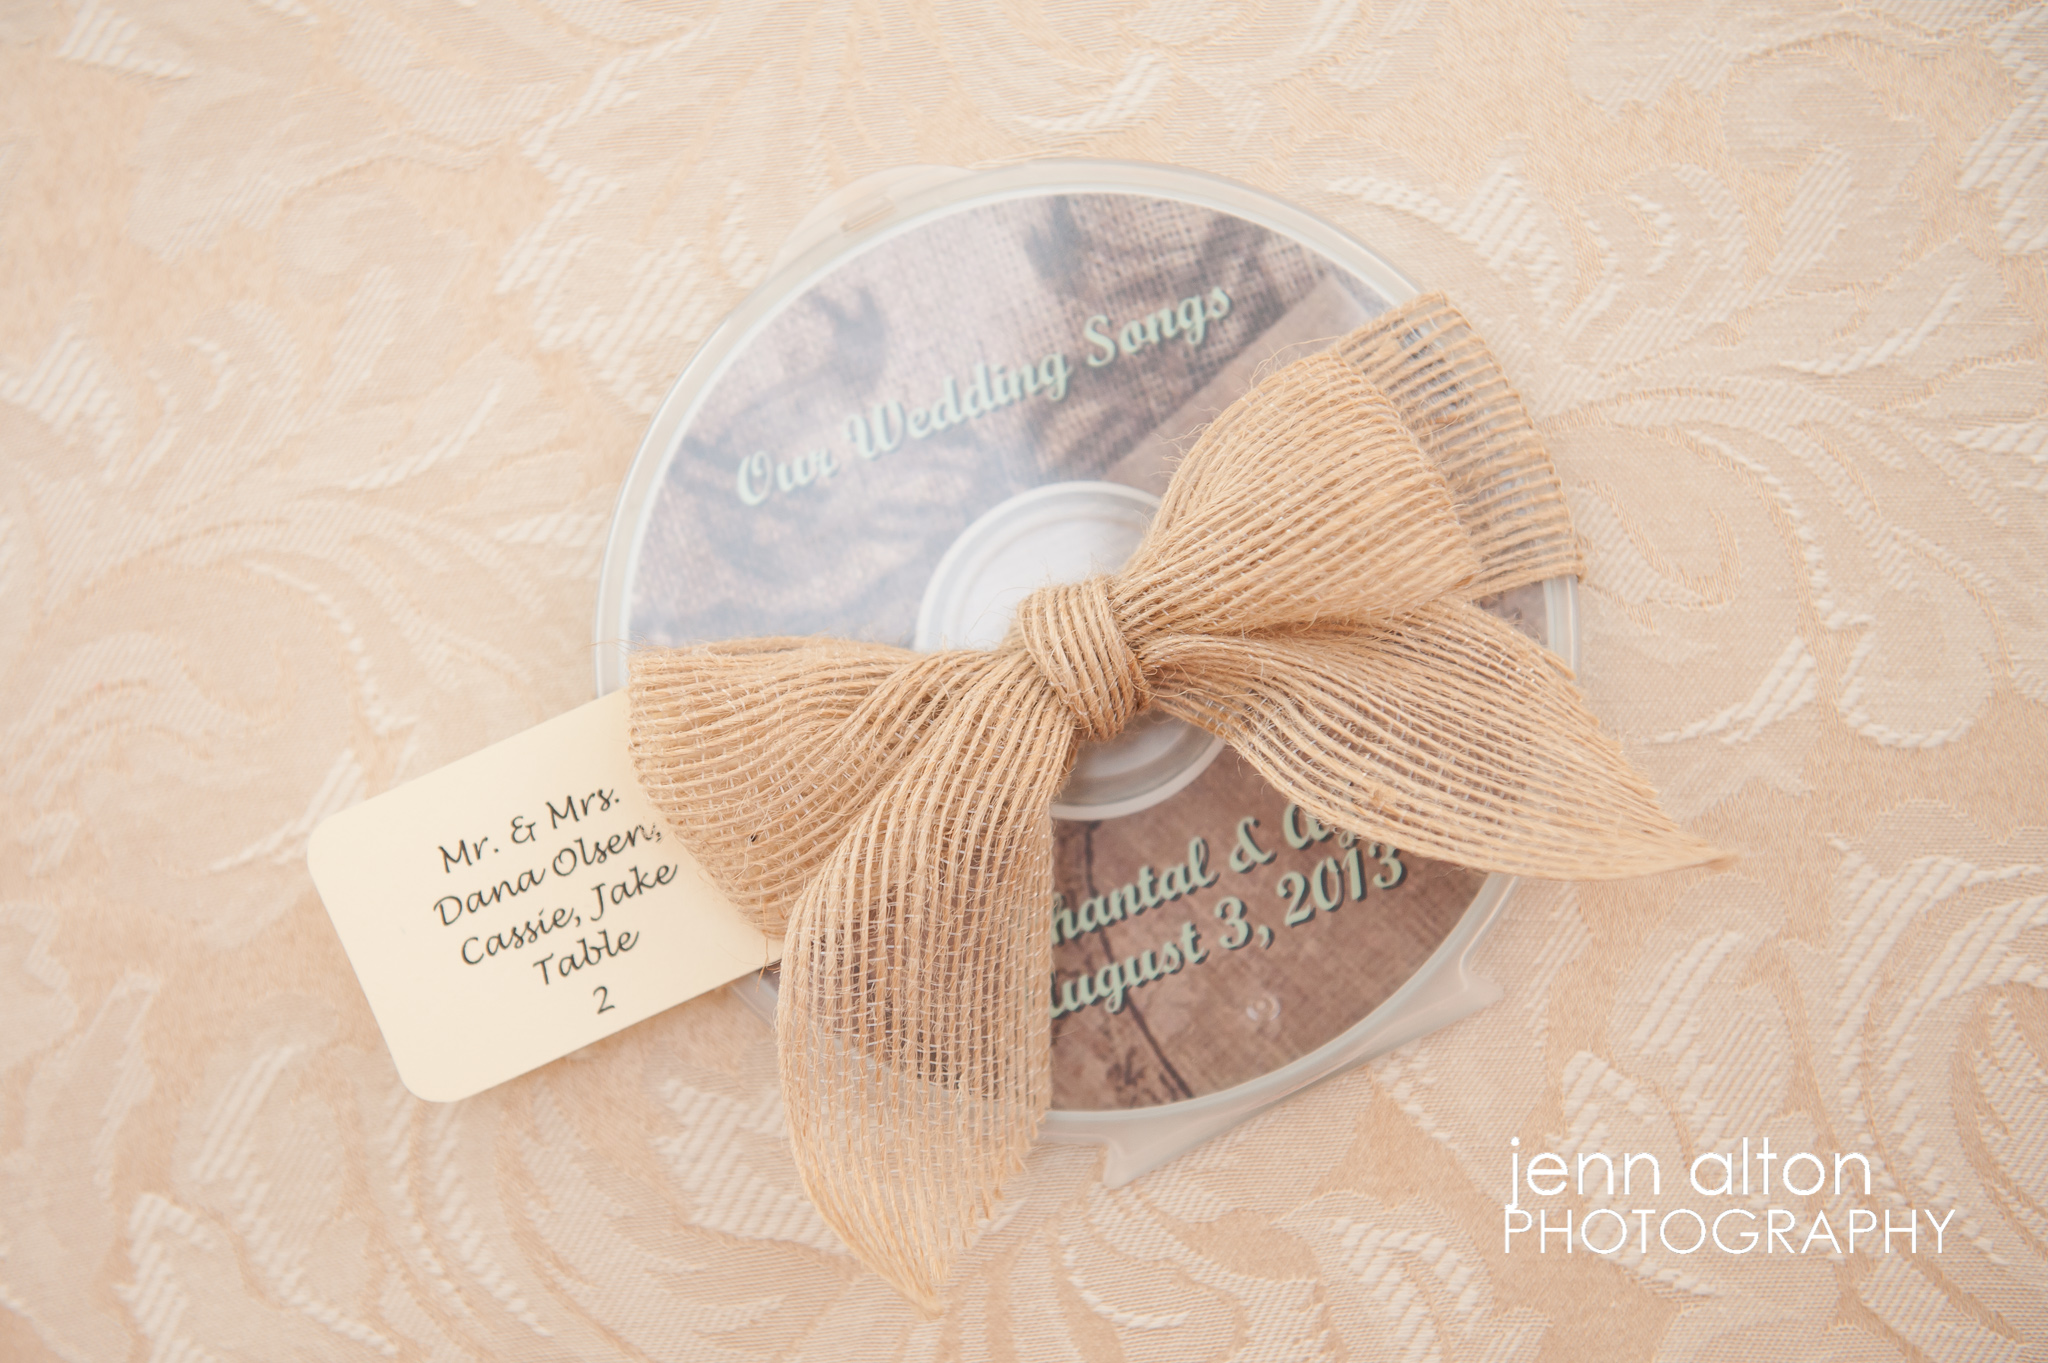 Personalized CD of songs for Wedding favors, burlap bow, Pinehills Golf Club Wedding Reception